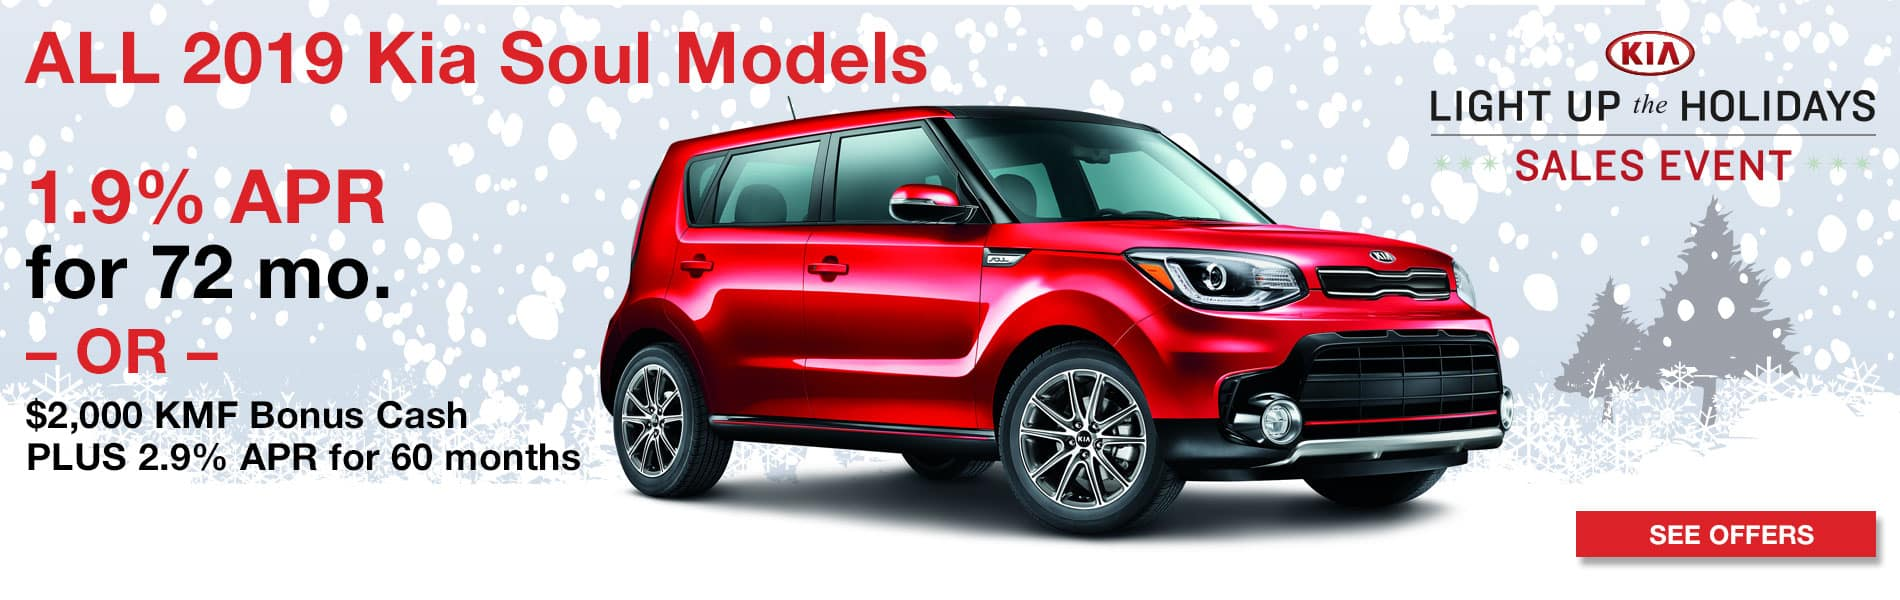 1.9% APR for 72 months or $2000 KMF Bonus Cash Plus 2.9% APR for 60 months on all 2019 Kia Soul Models